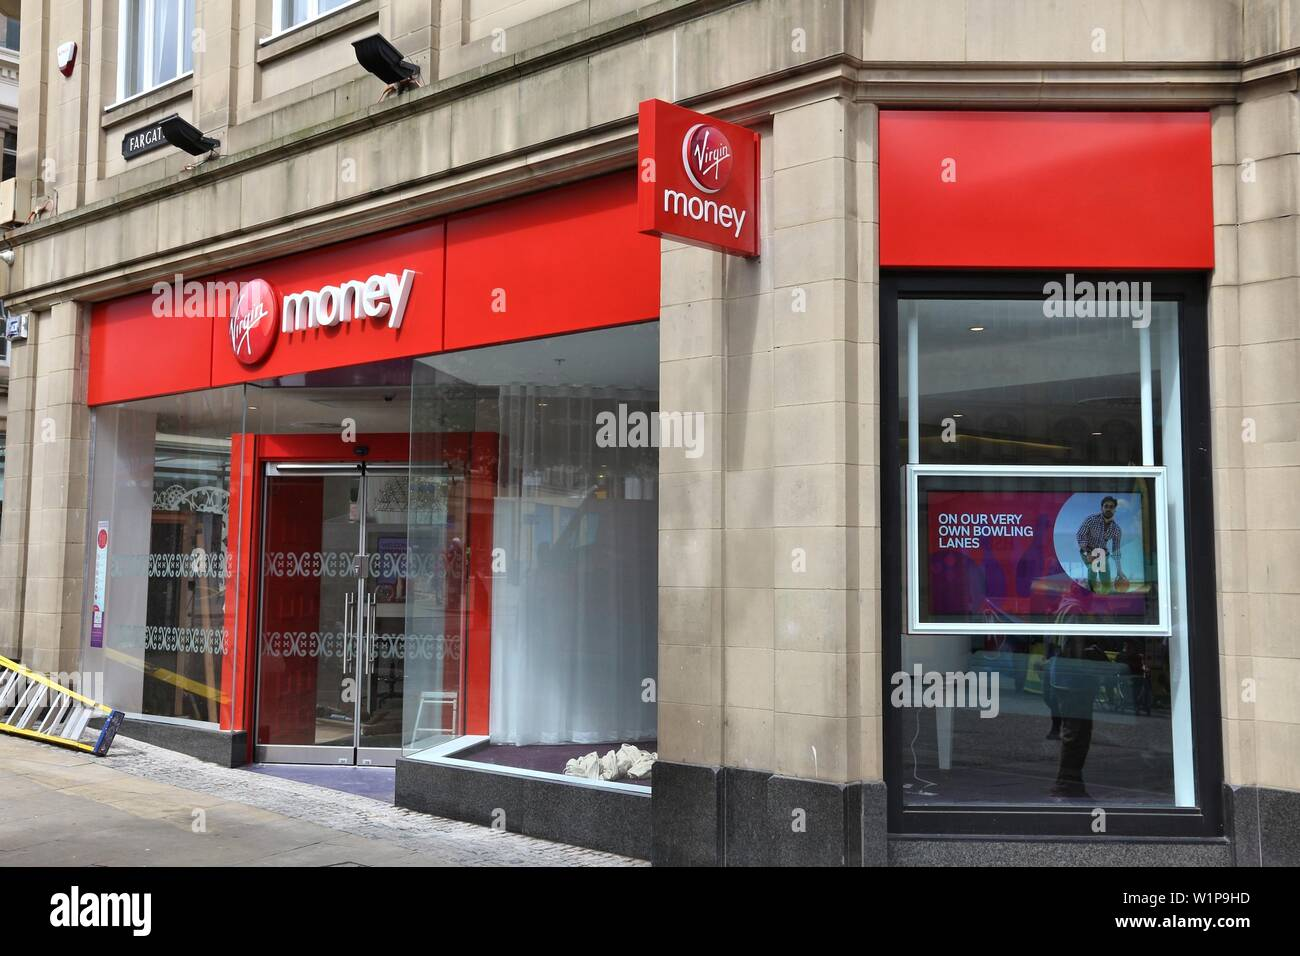 SHEFFIELD, UK - JULY 10, 2016: Virgin Money branch in Sheffield, Yorkshire, UK. The banking and mortgage financial specialist Virgin Money is part of - Stock Image